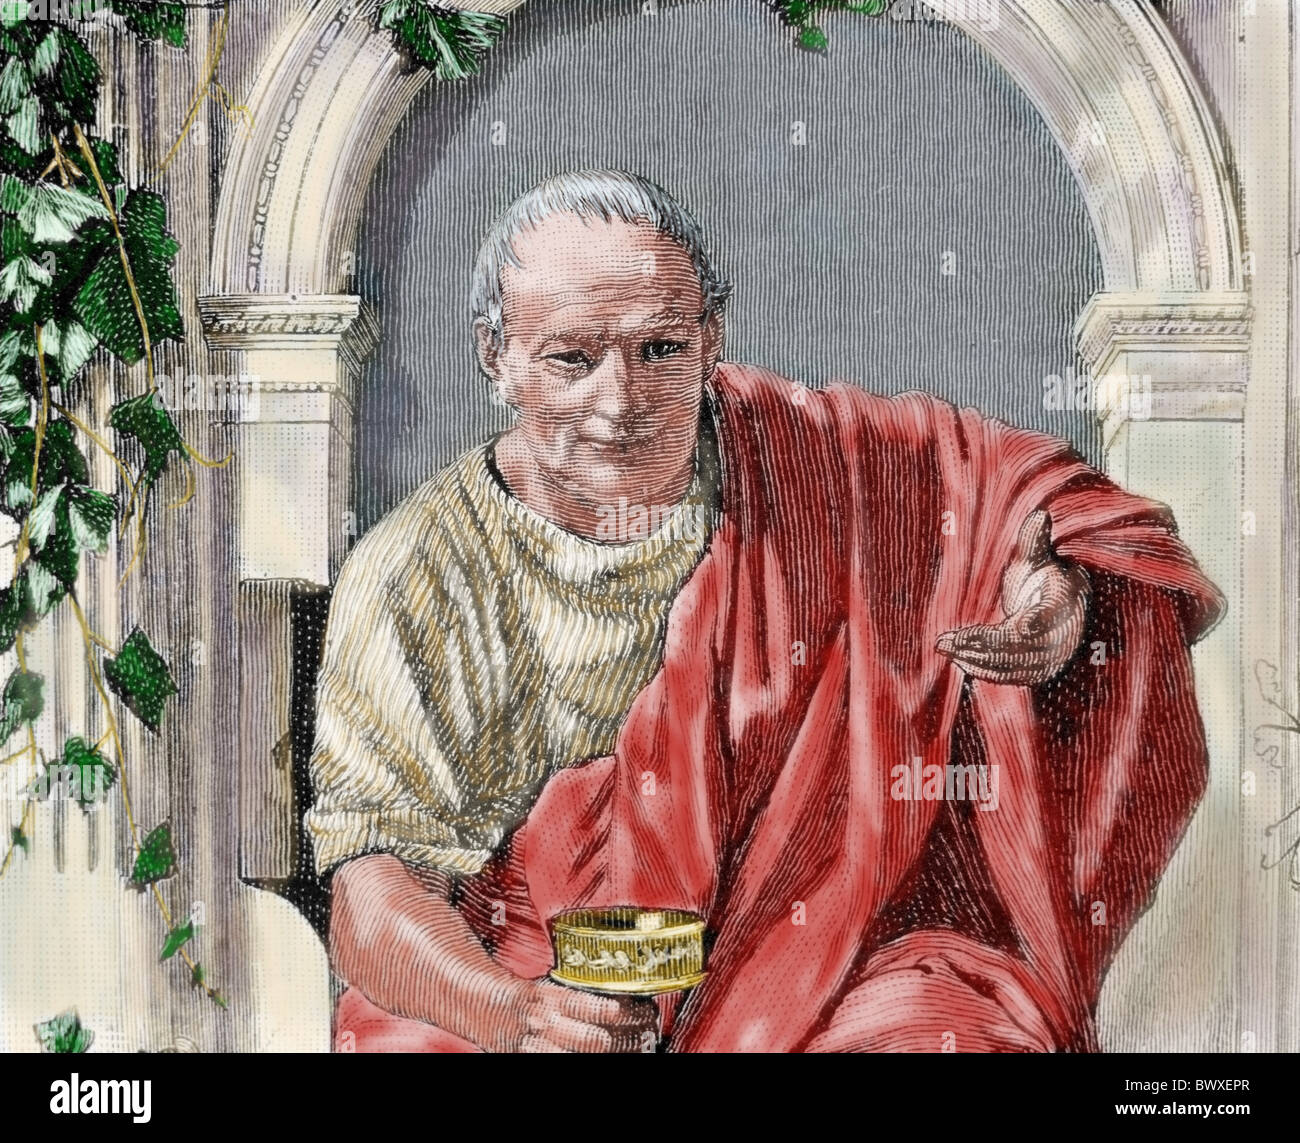 Horace (65-8 B.C.). Roman lyric poet during the time of Augustus. Colored engraving. - Stock Image